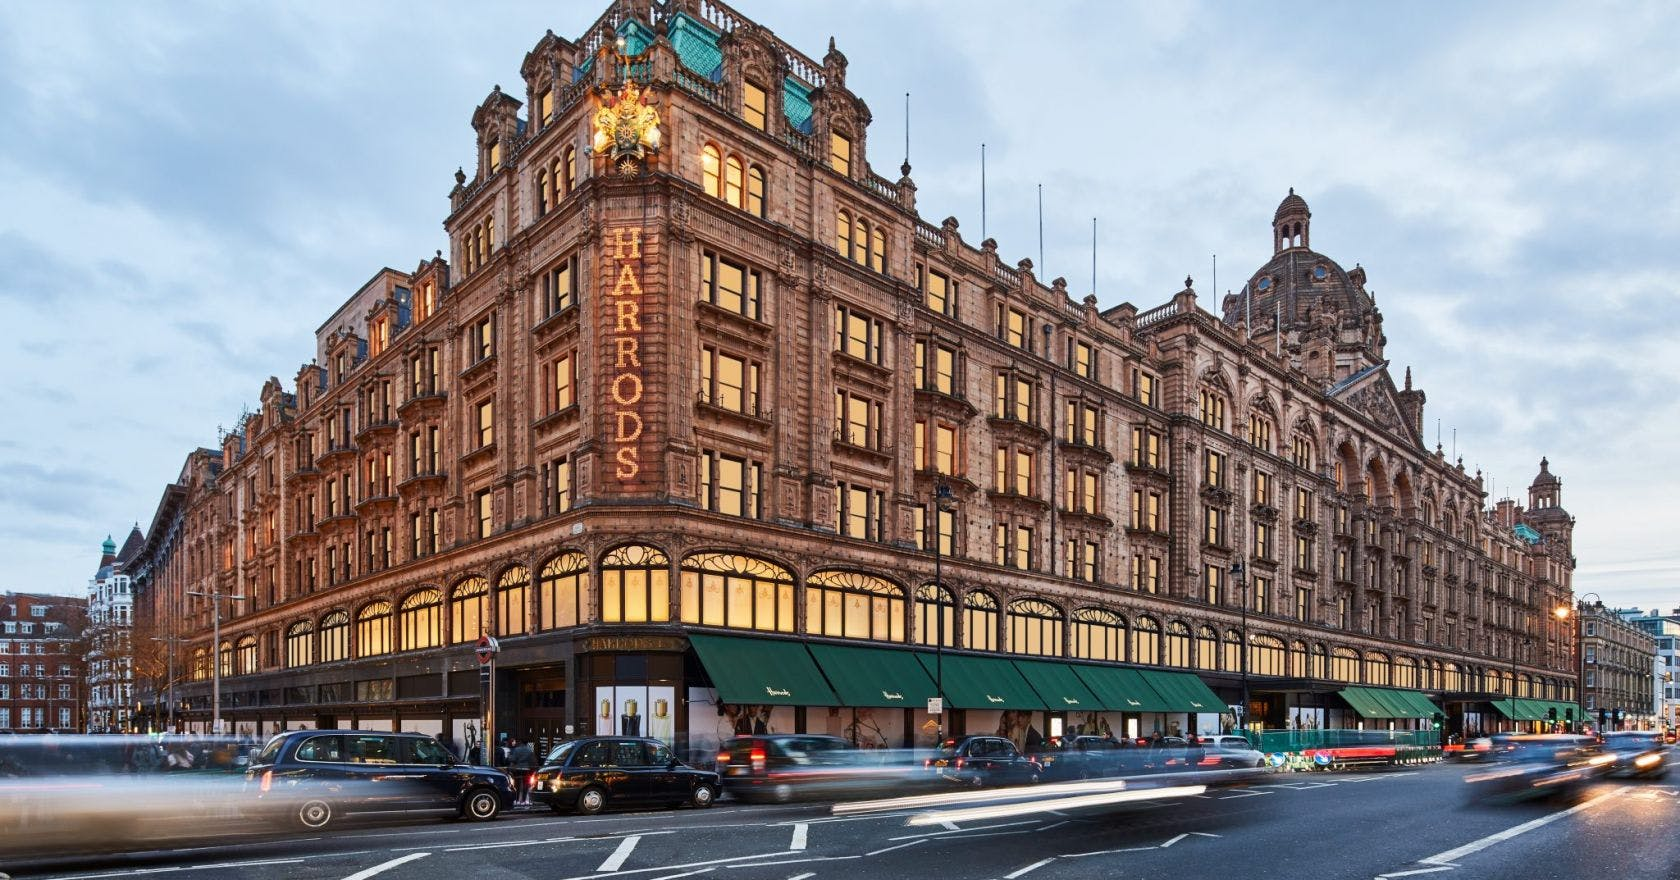 Harrods is opening its first ever outlet store